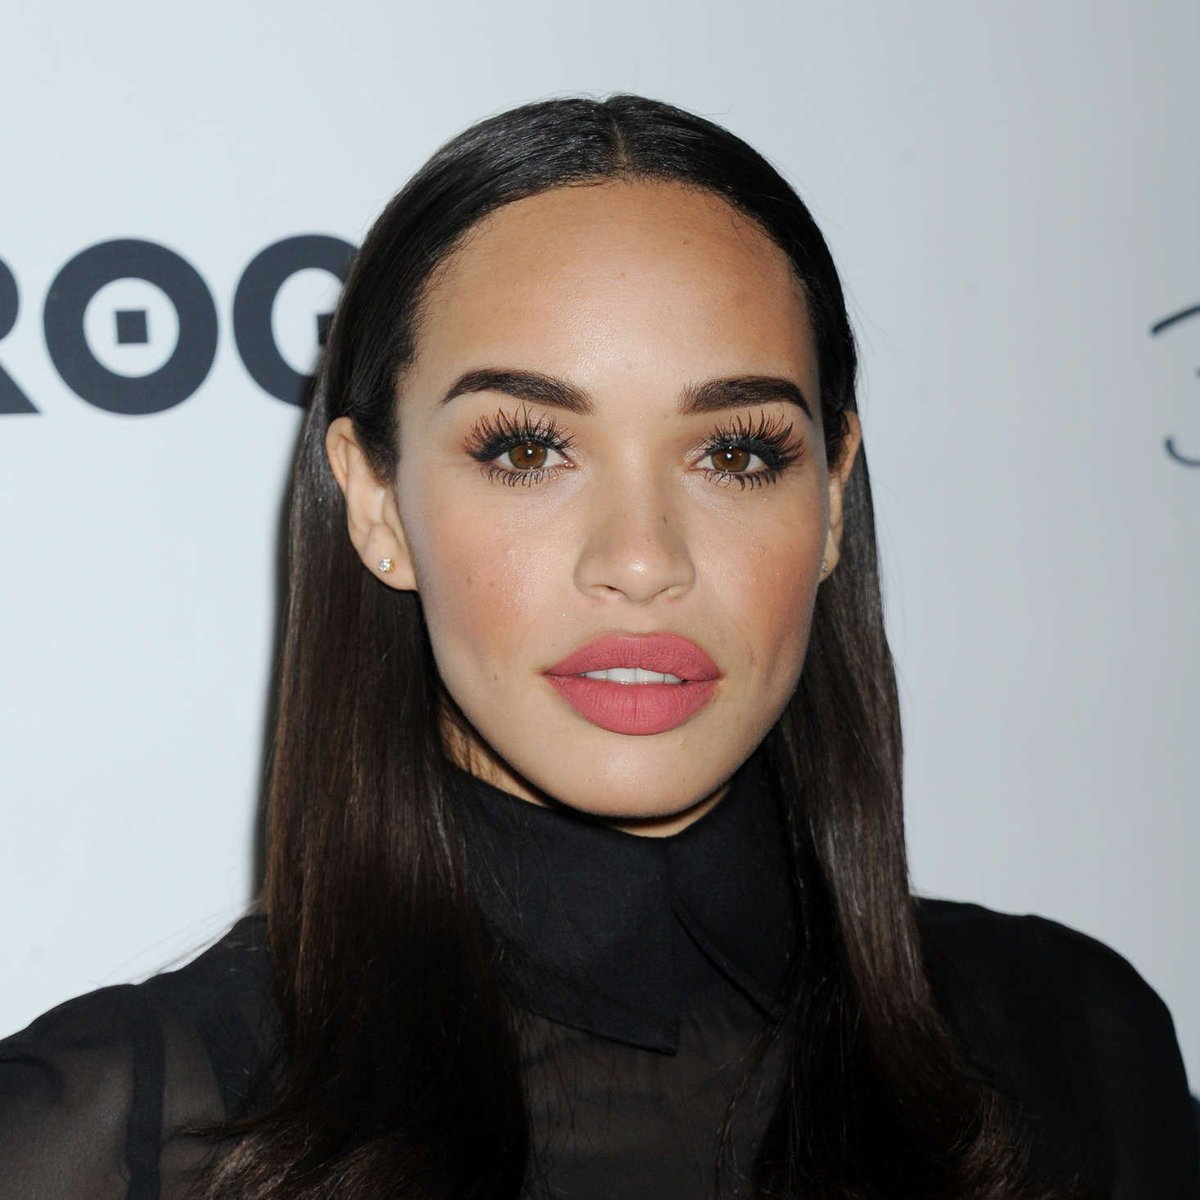 Cleopatra Coleman nudes (94 pictures), hacked Porno, Instagram, cleavage 2015